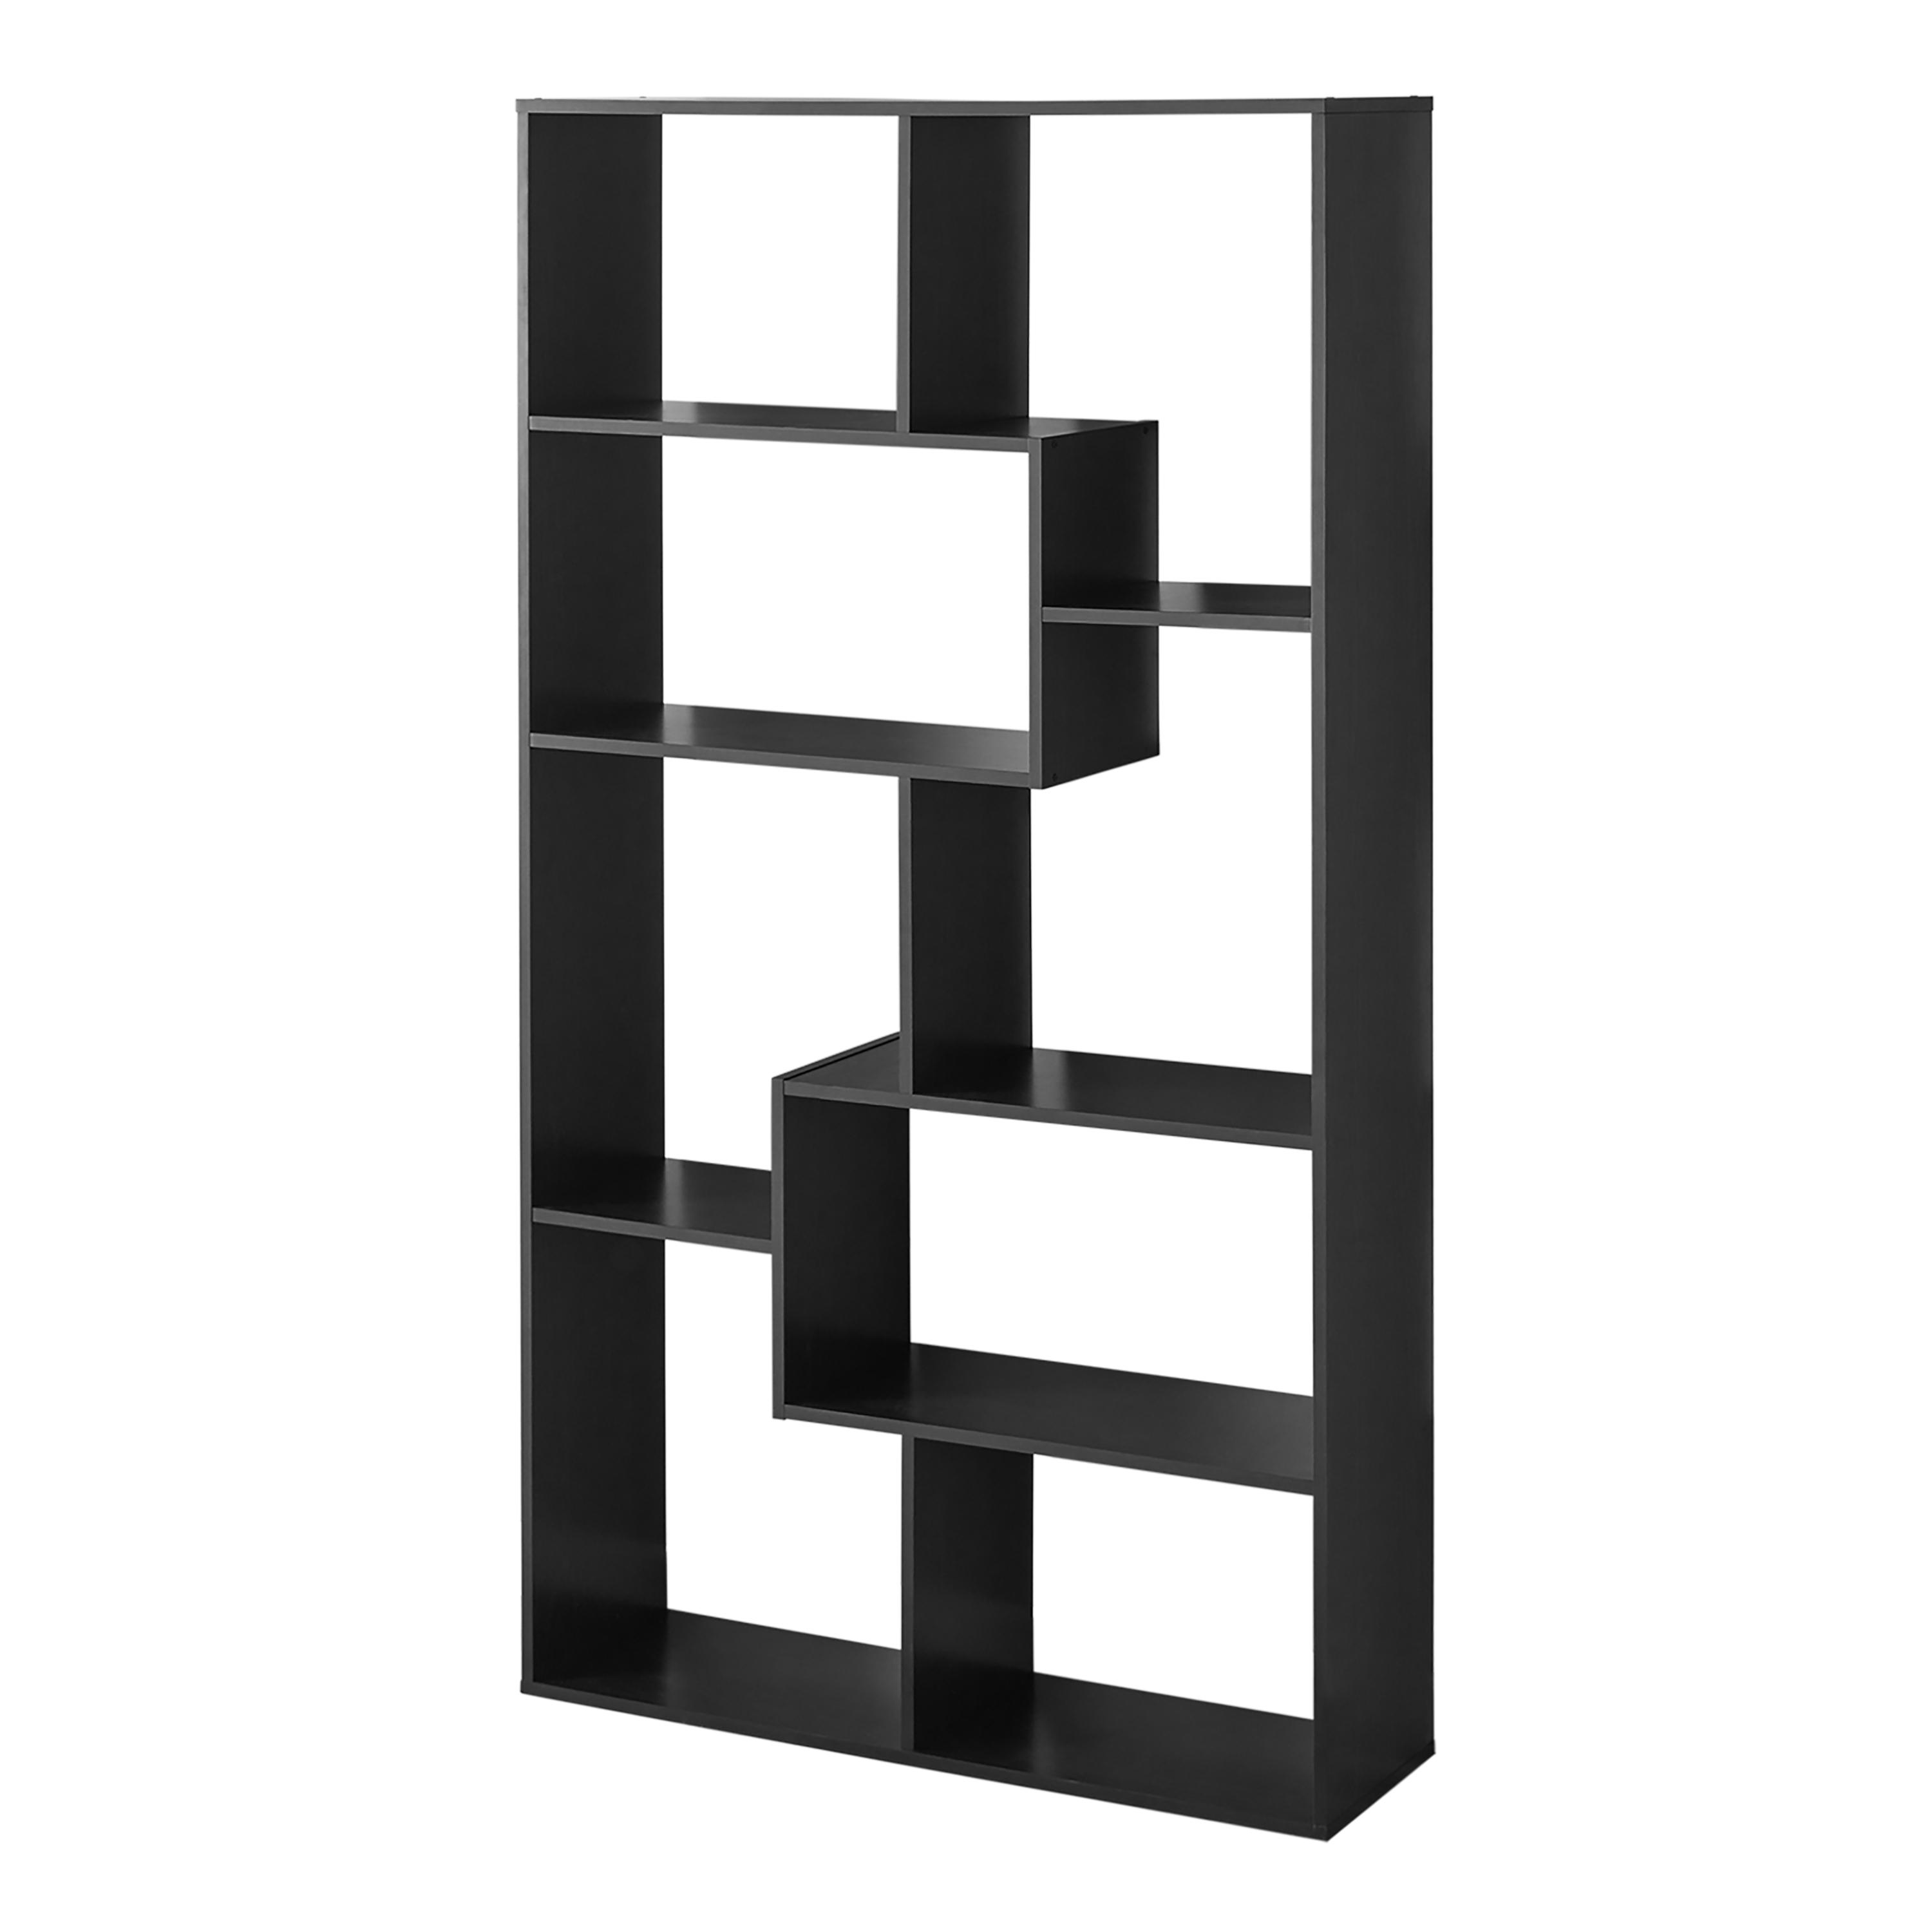 Mainstays 8 Cubes Bookcase Storage Cabinet Bookshelf File Document Racks Magazine Storage Organizer Room Decorations